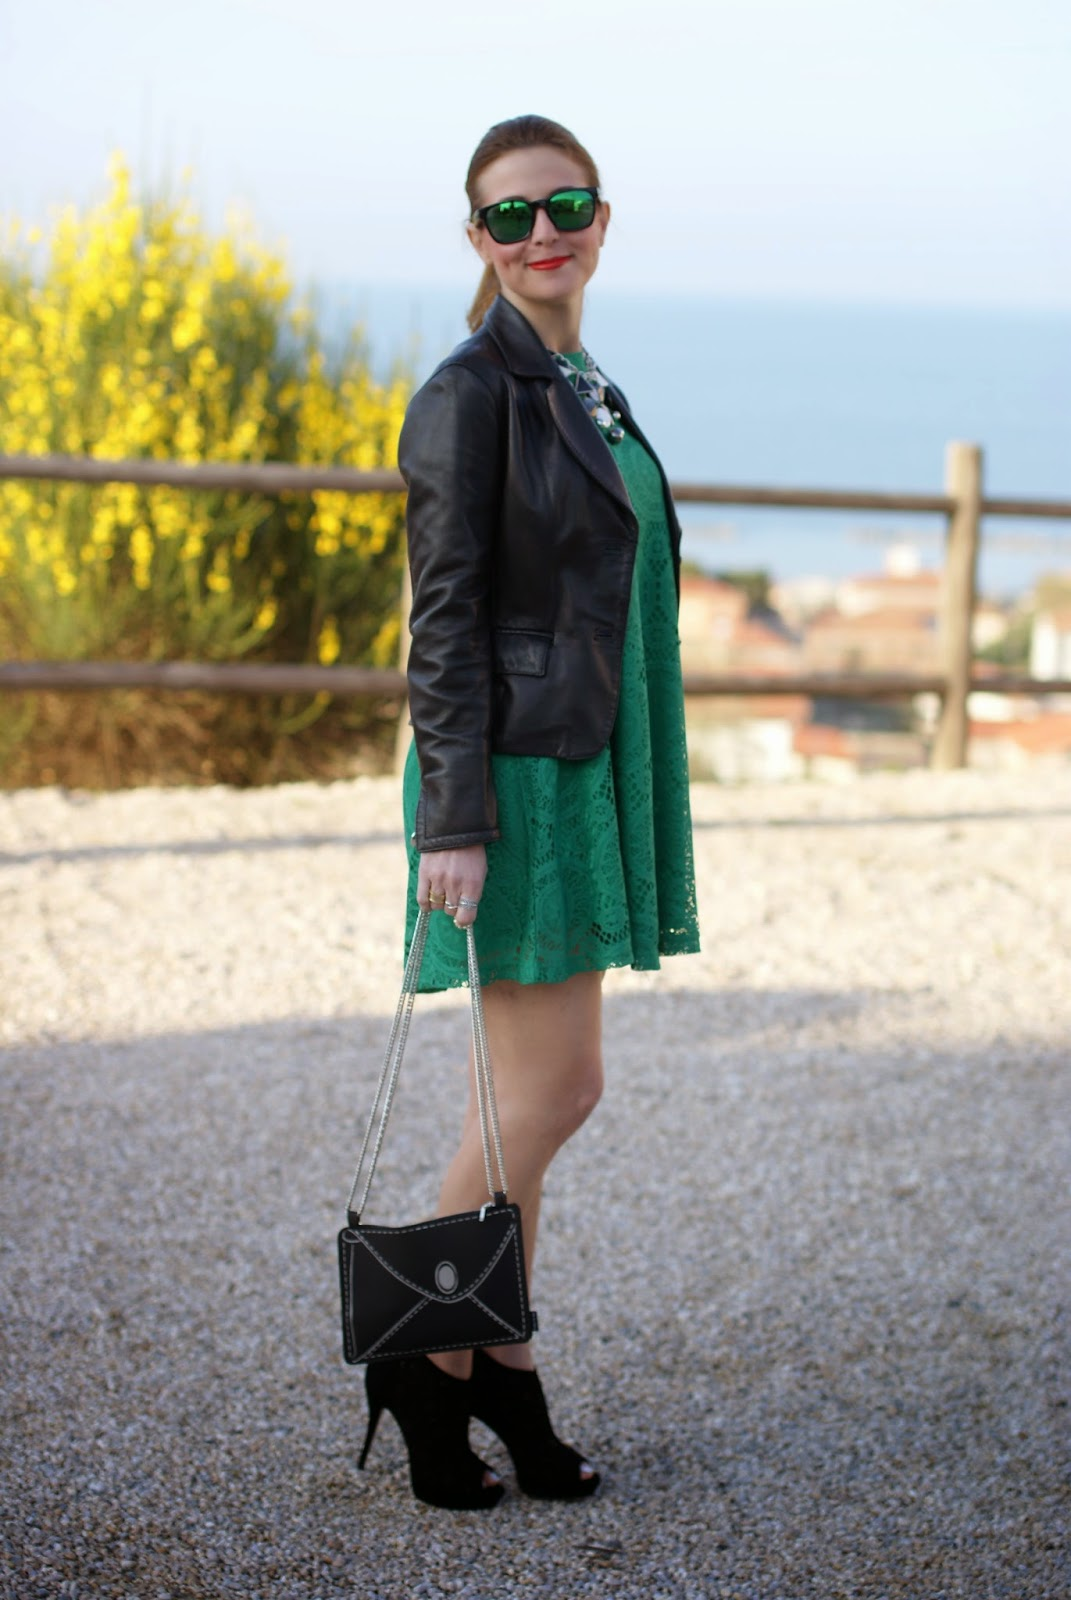 Vitti Ferria Contin jewelry, Today I'm me evening bag, Sheinside green dress, Fashion and Cookies, fashion blogger